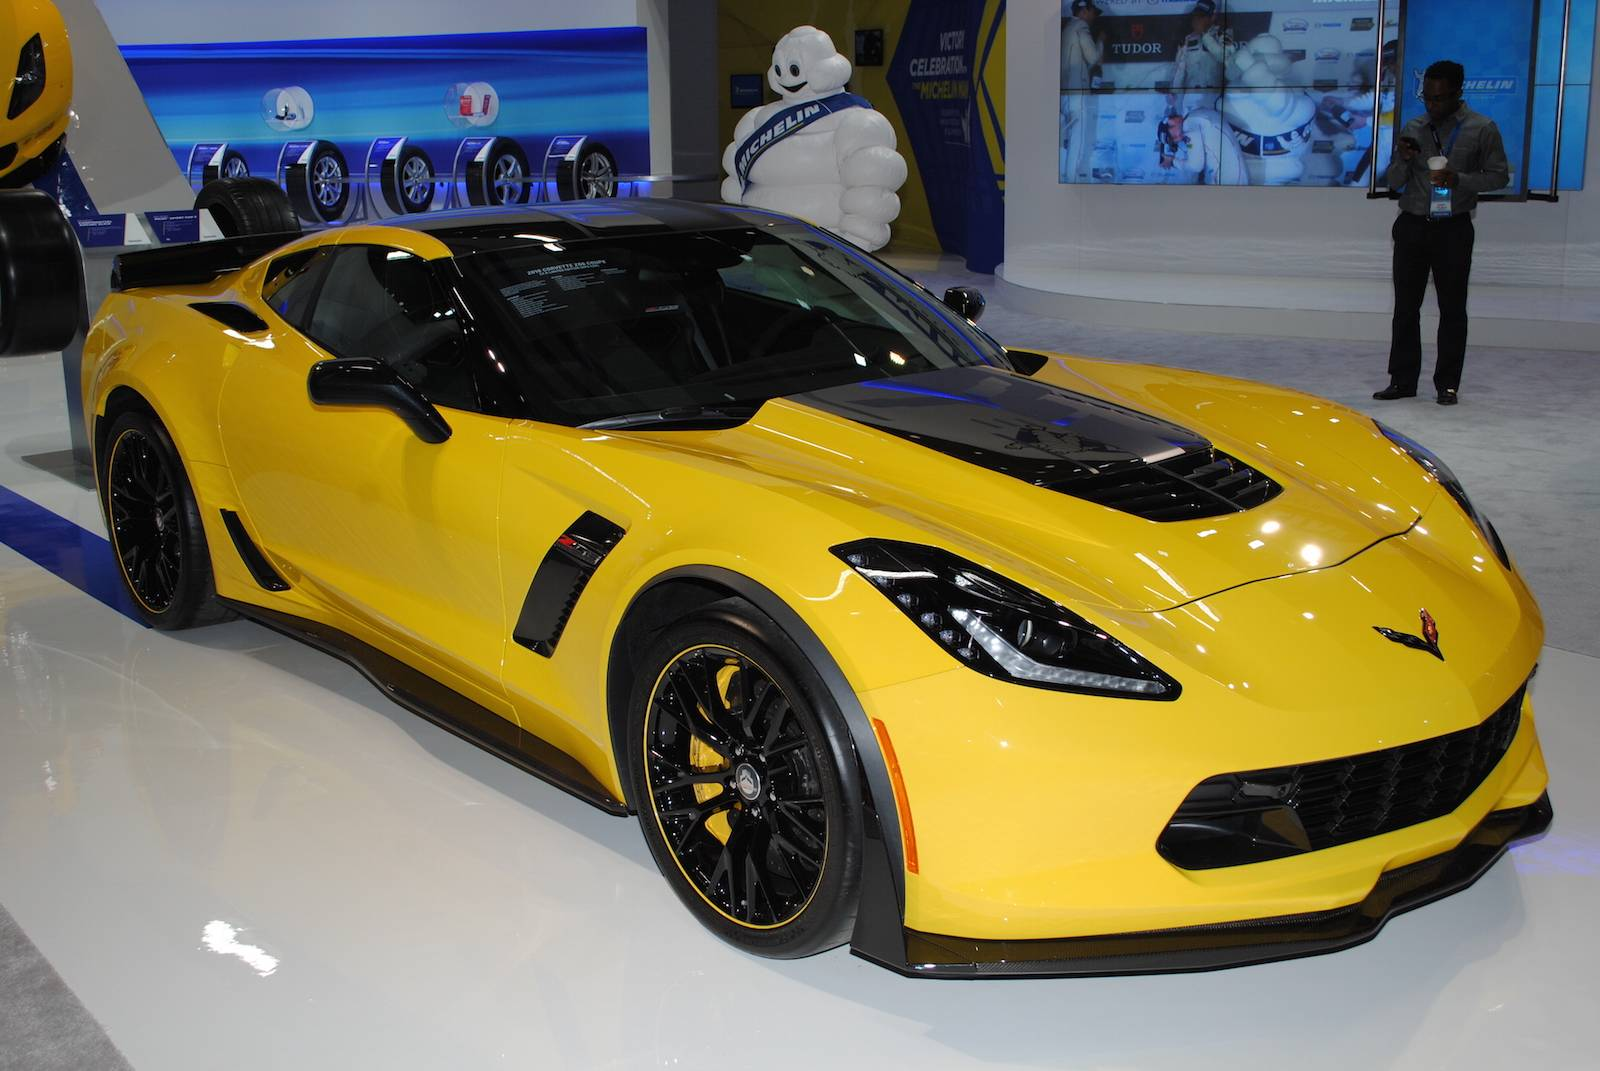 detroit 2016 chevrolet corvette z06 c7 r edition gtspirit. Black Bedroom Furniture Sets. Home Design Ideas